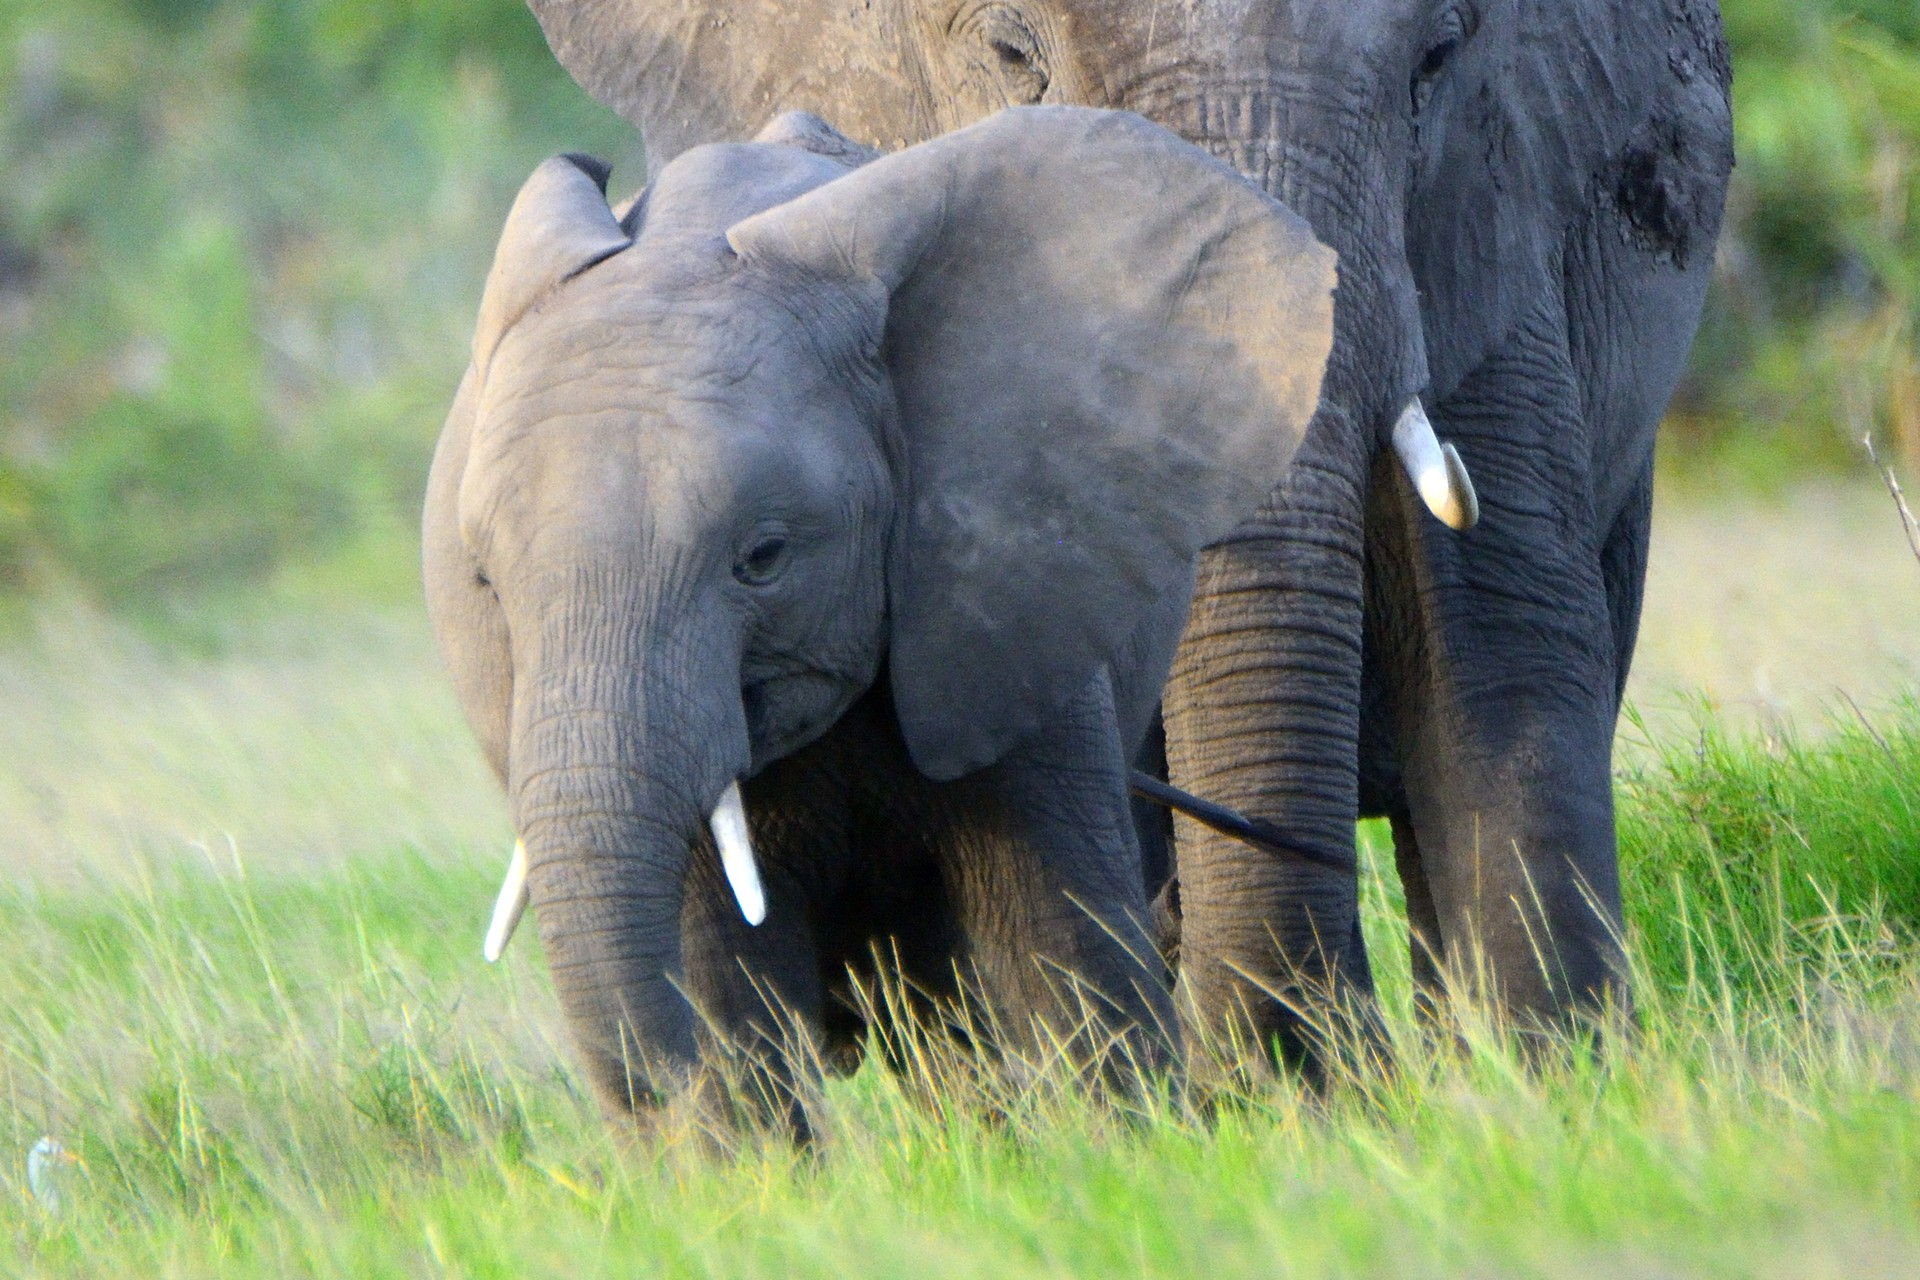 A baby elephant in the Selous Reserve, Tanzania